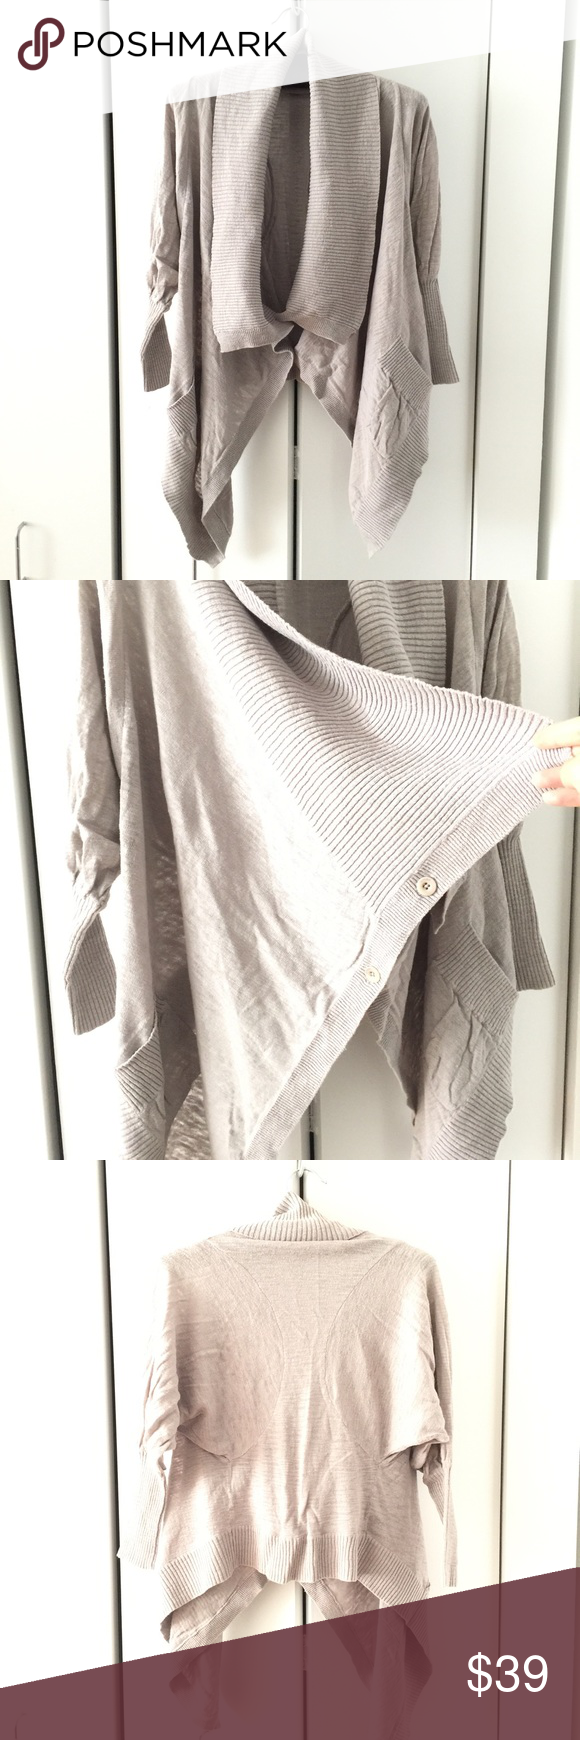 Aritzia Wilfred asymmetrical cardigan • gently used  • taupe color, 3/4 length dolman sleeves, asymmetrical draped front  • made with linen and cotton   ➡️15% off 2 or more items ➡️Sorry, no trades or holds Aritzia Sweaters Cardigans